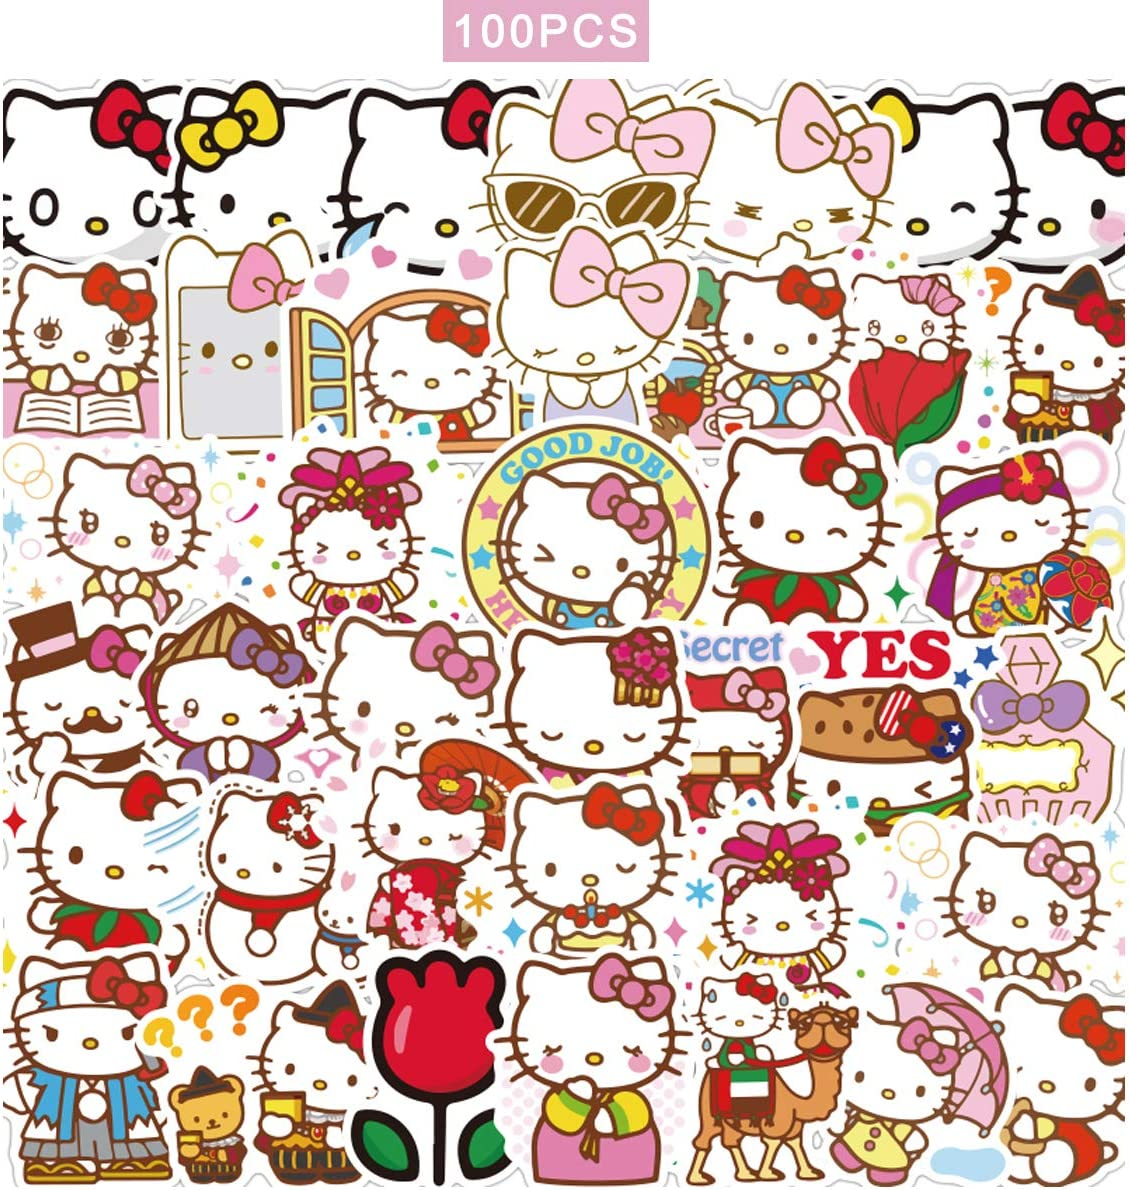 100pcs Hello Kitty Stickers Japanese Sanrio Kawaii Stickers Aesthetic Vinyl Stickers for Water Bottles Skateboard Laptop for Kids Adults Teens Waterproof Sticker Packs